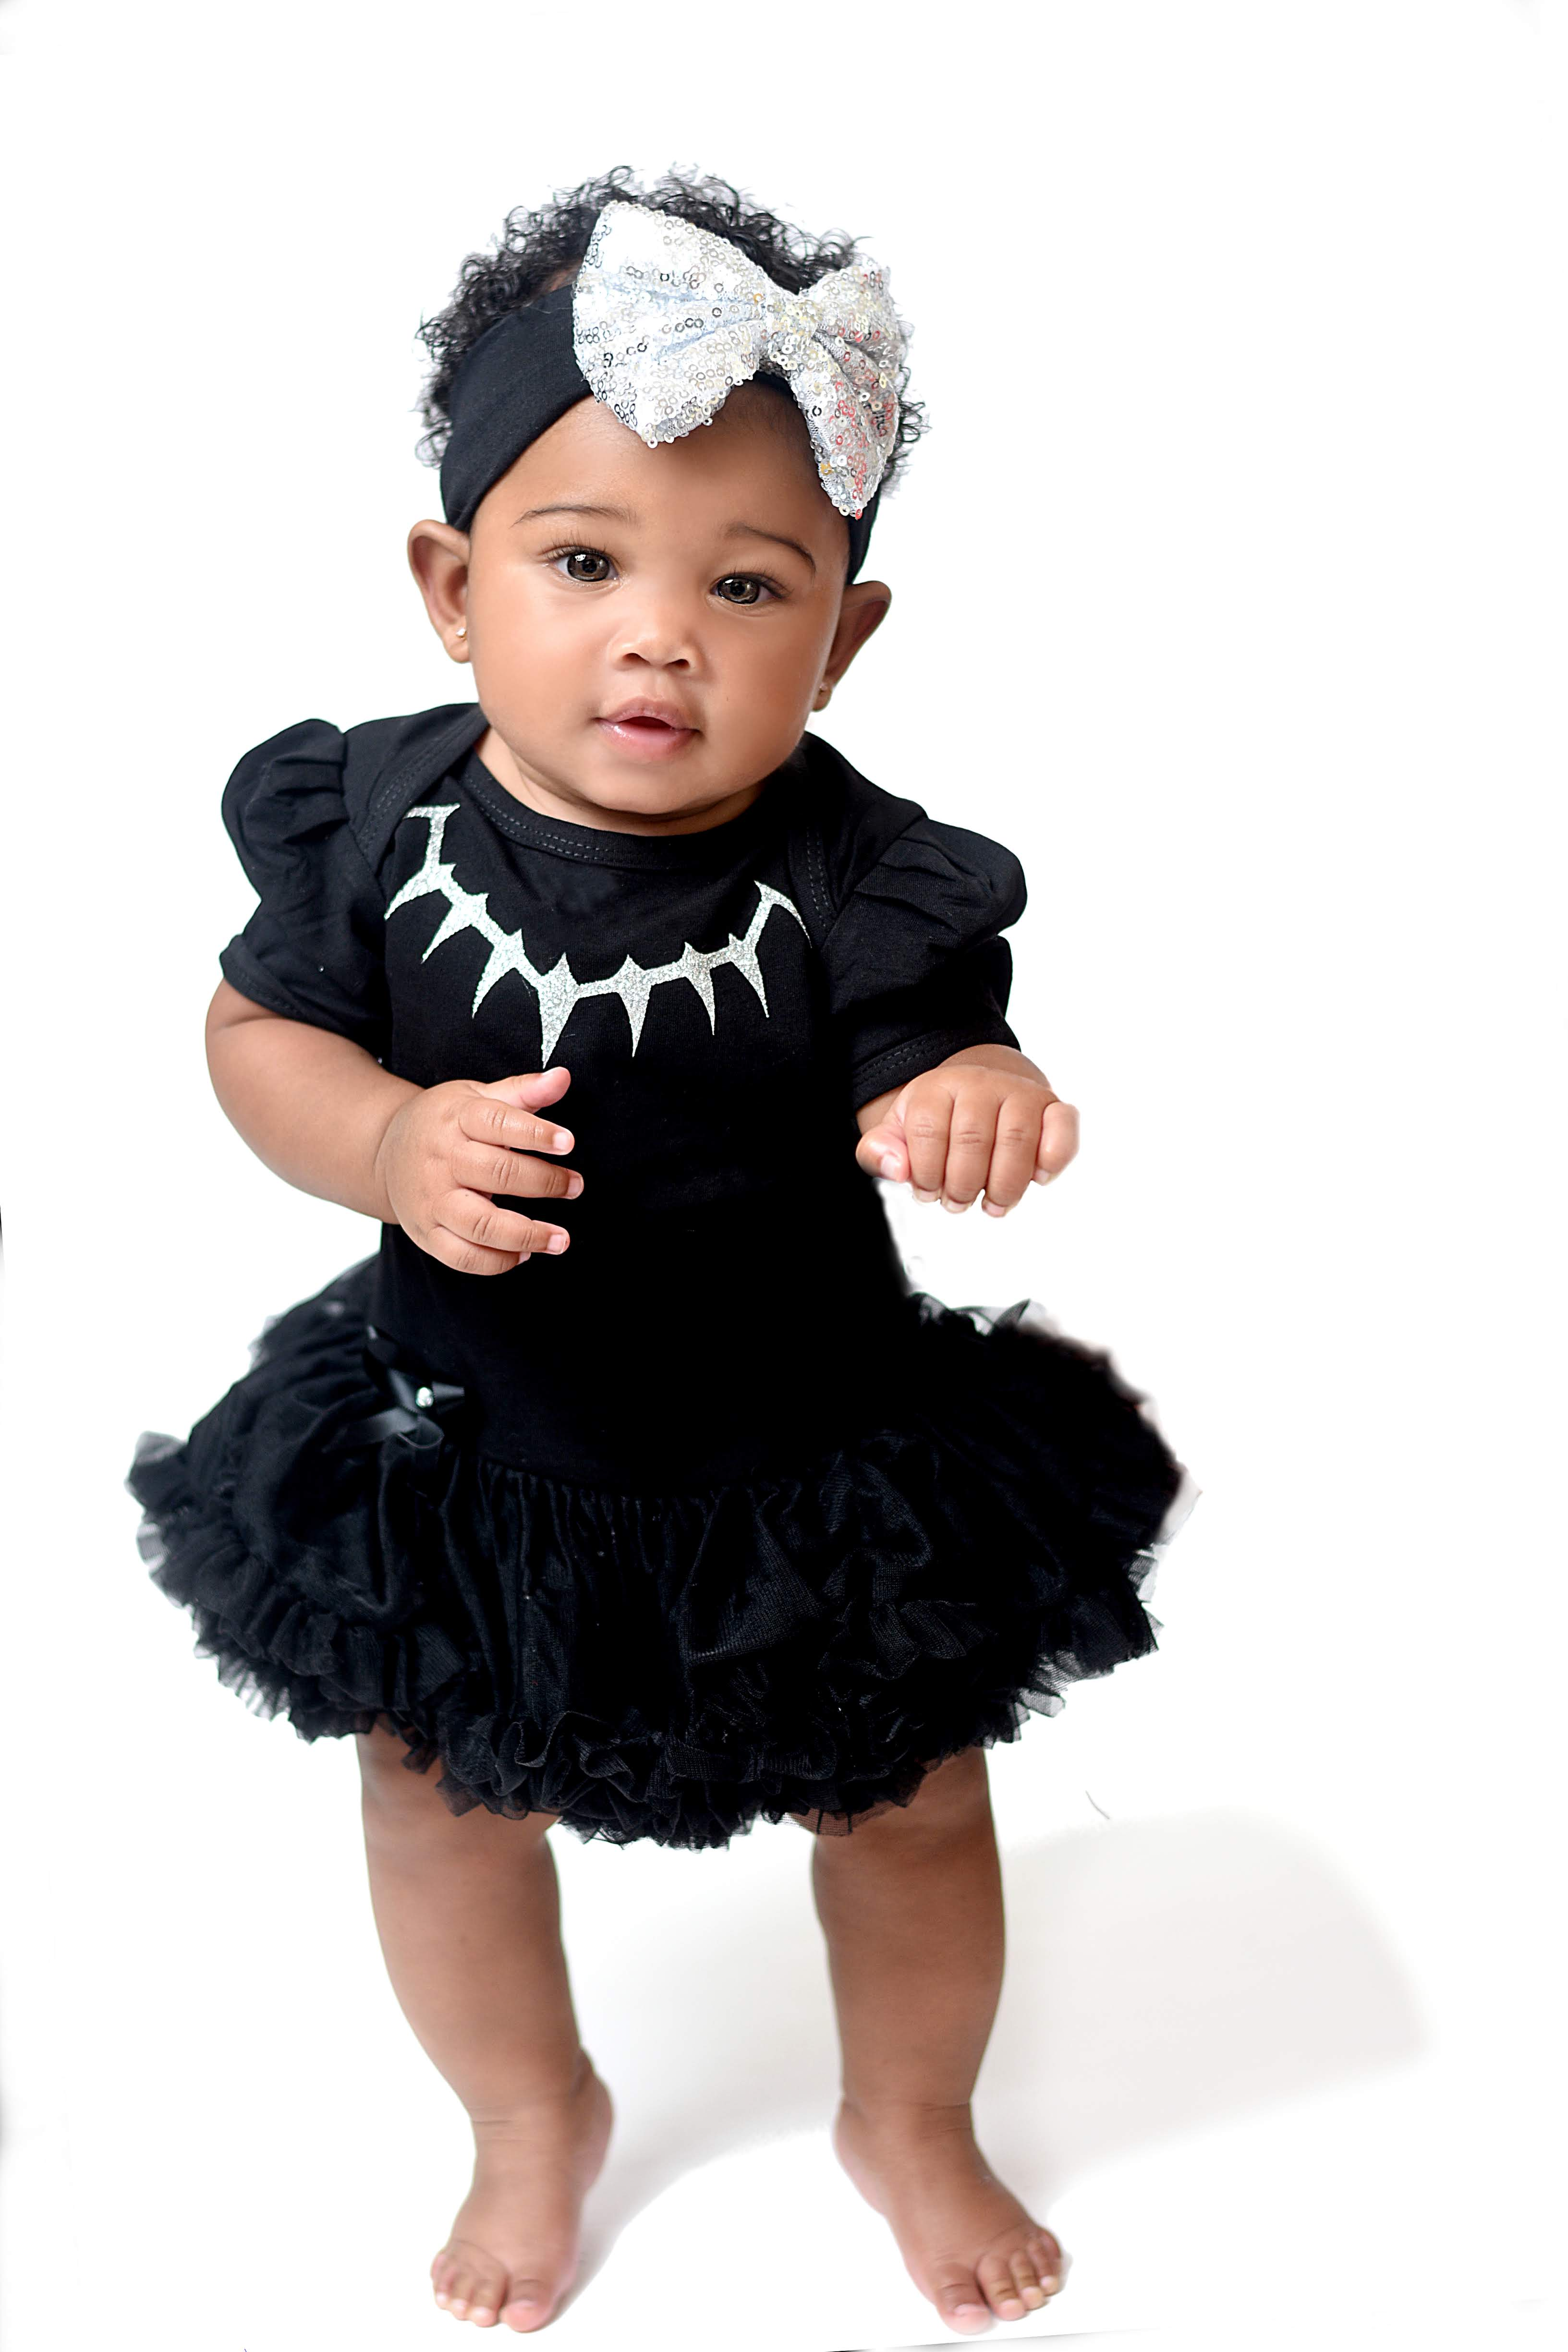 Black Panther Tutu Costume For Baby Girls With a Matching Headband Sizes 0-3 Months to 12-18 Months